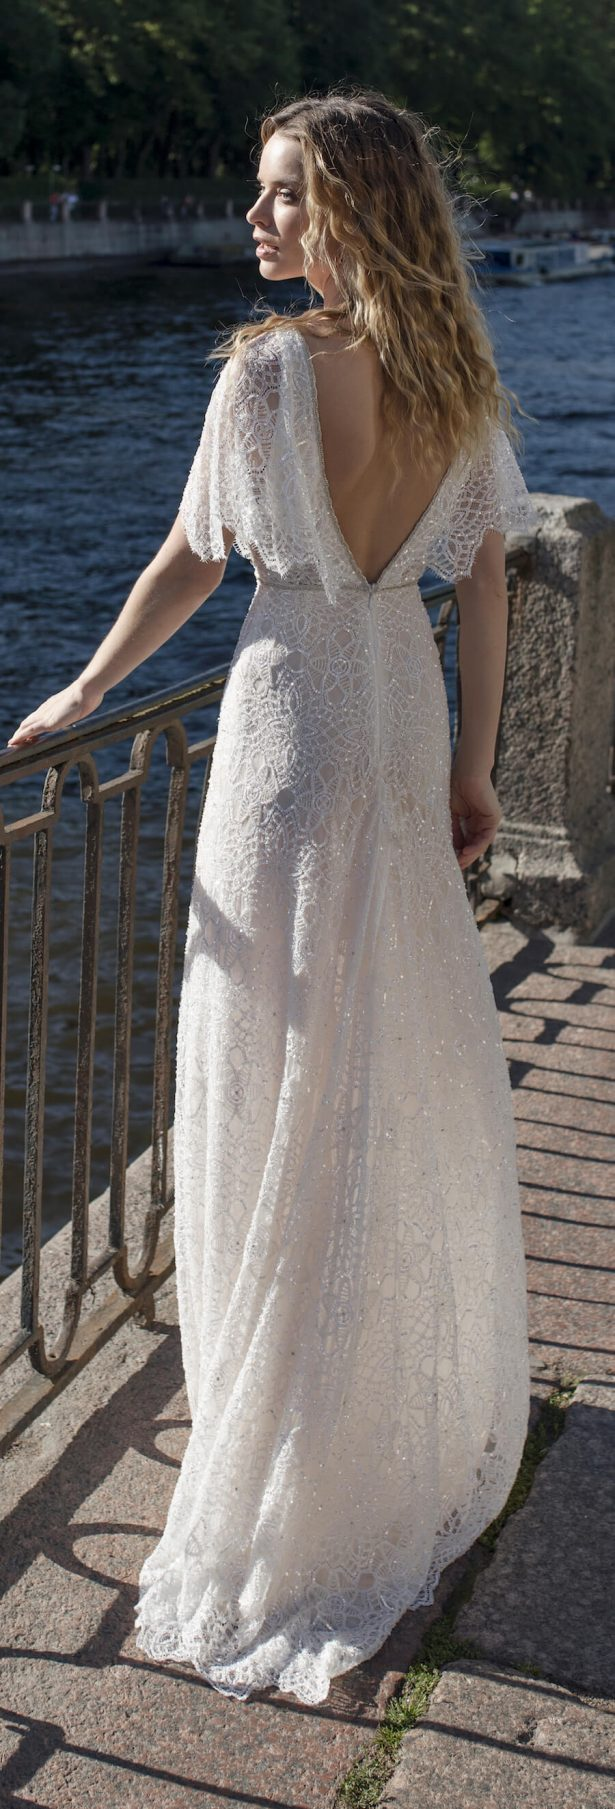 Lian Rokman Wedding Dress 2018 - Stardust Bridal Collection -Uranus4